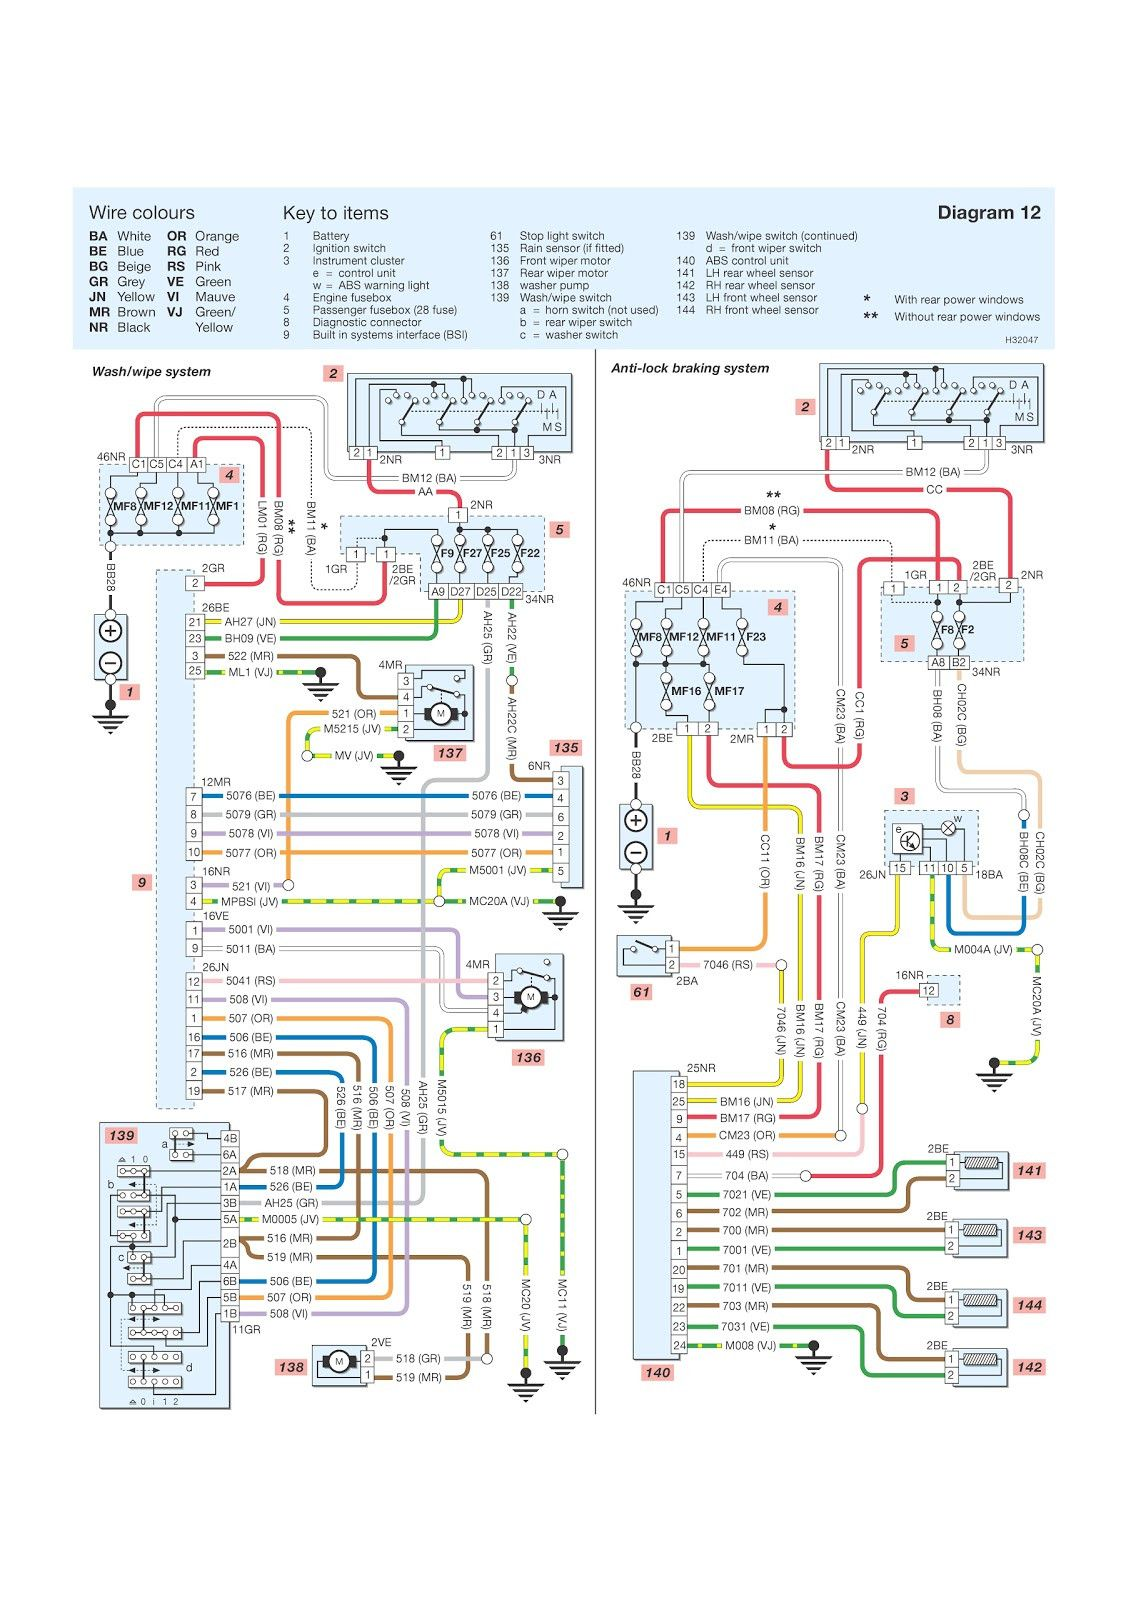 Peugeot 206 Xsi Fuse Box Diagram Great Installation Of Wiring Layout Cc Schematic Diagrams Rh 8 Koch Foerderbandtrommeln De Ecu Relay Type